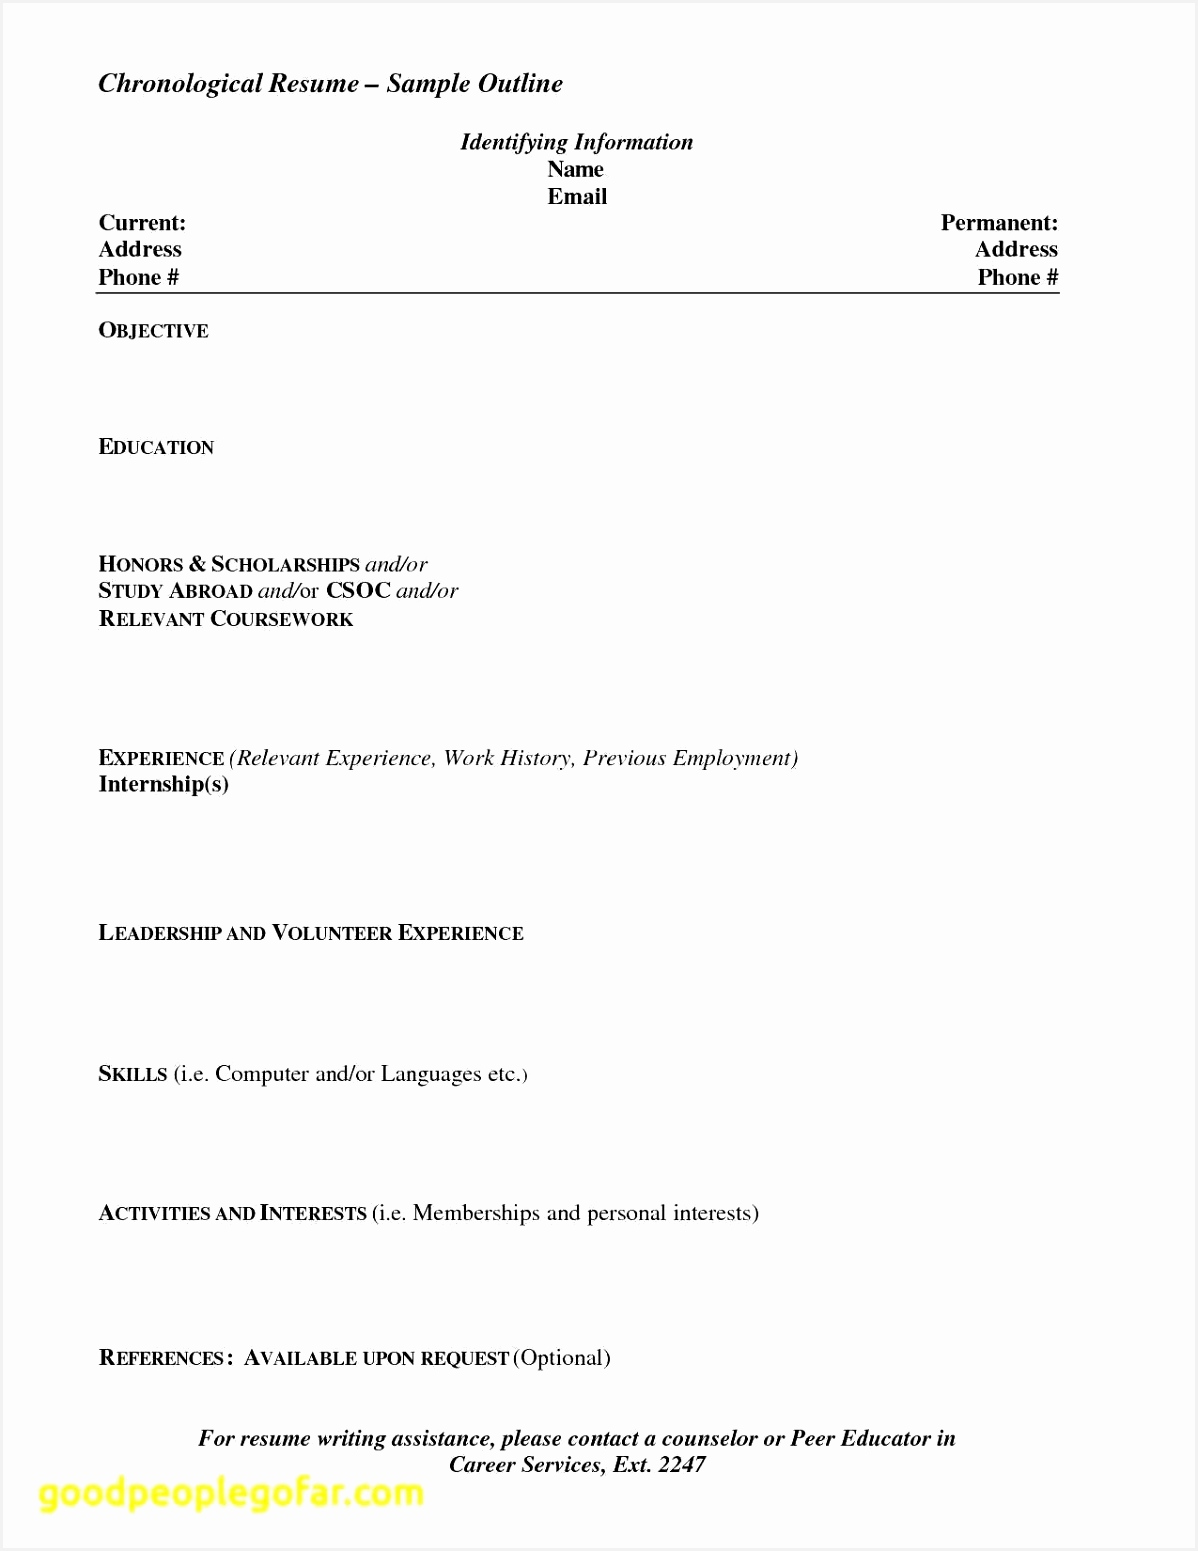 Medical Biller Resume New Unique Resume for Highschool Students Excellent Resumes 0d Medical Biller Resume 15511198ebvvs